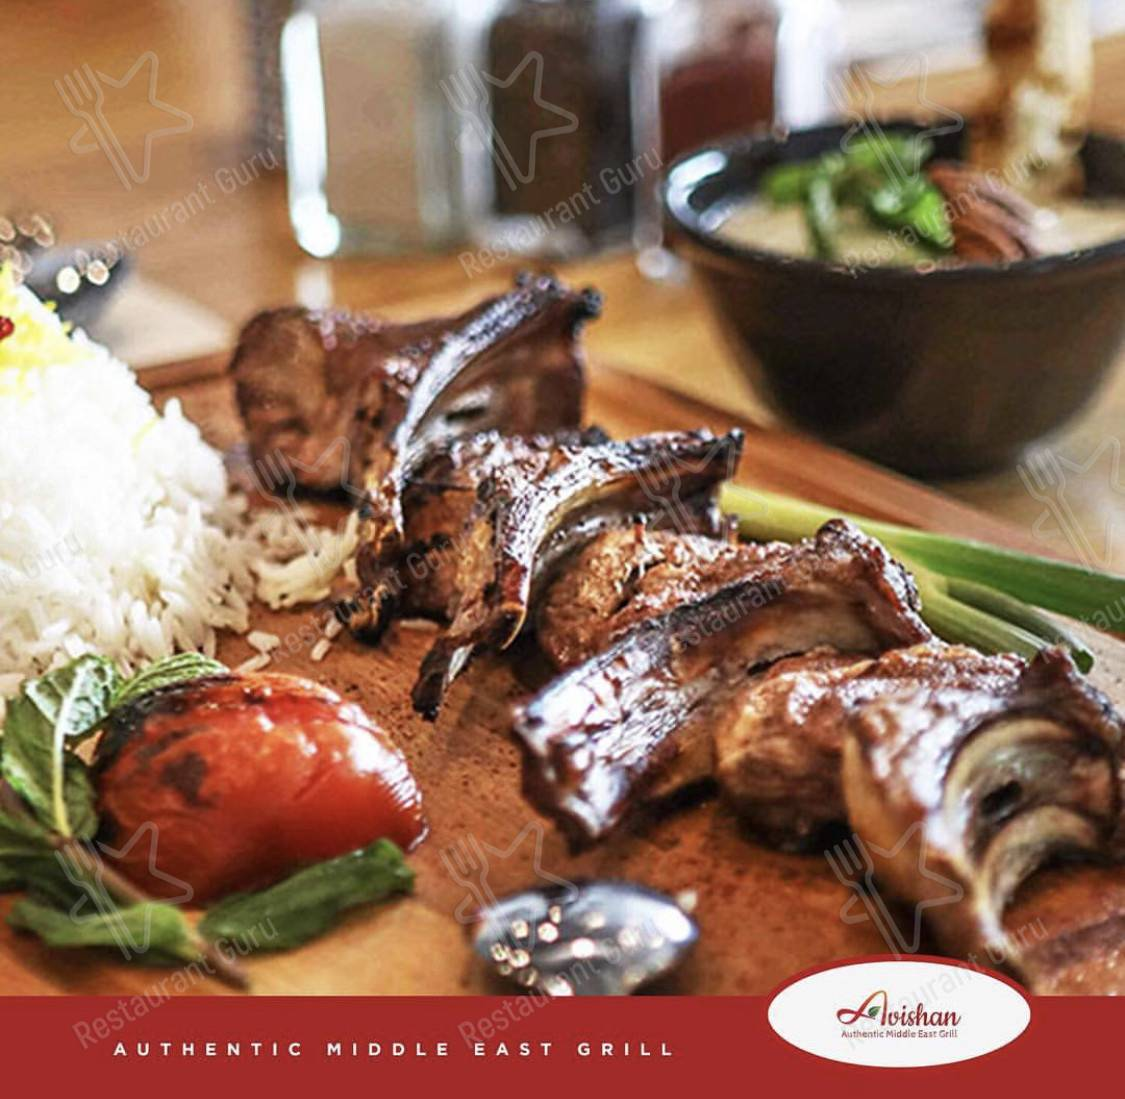 Avishan Authentic Middle East Grill menu - meals and drinks